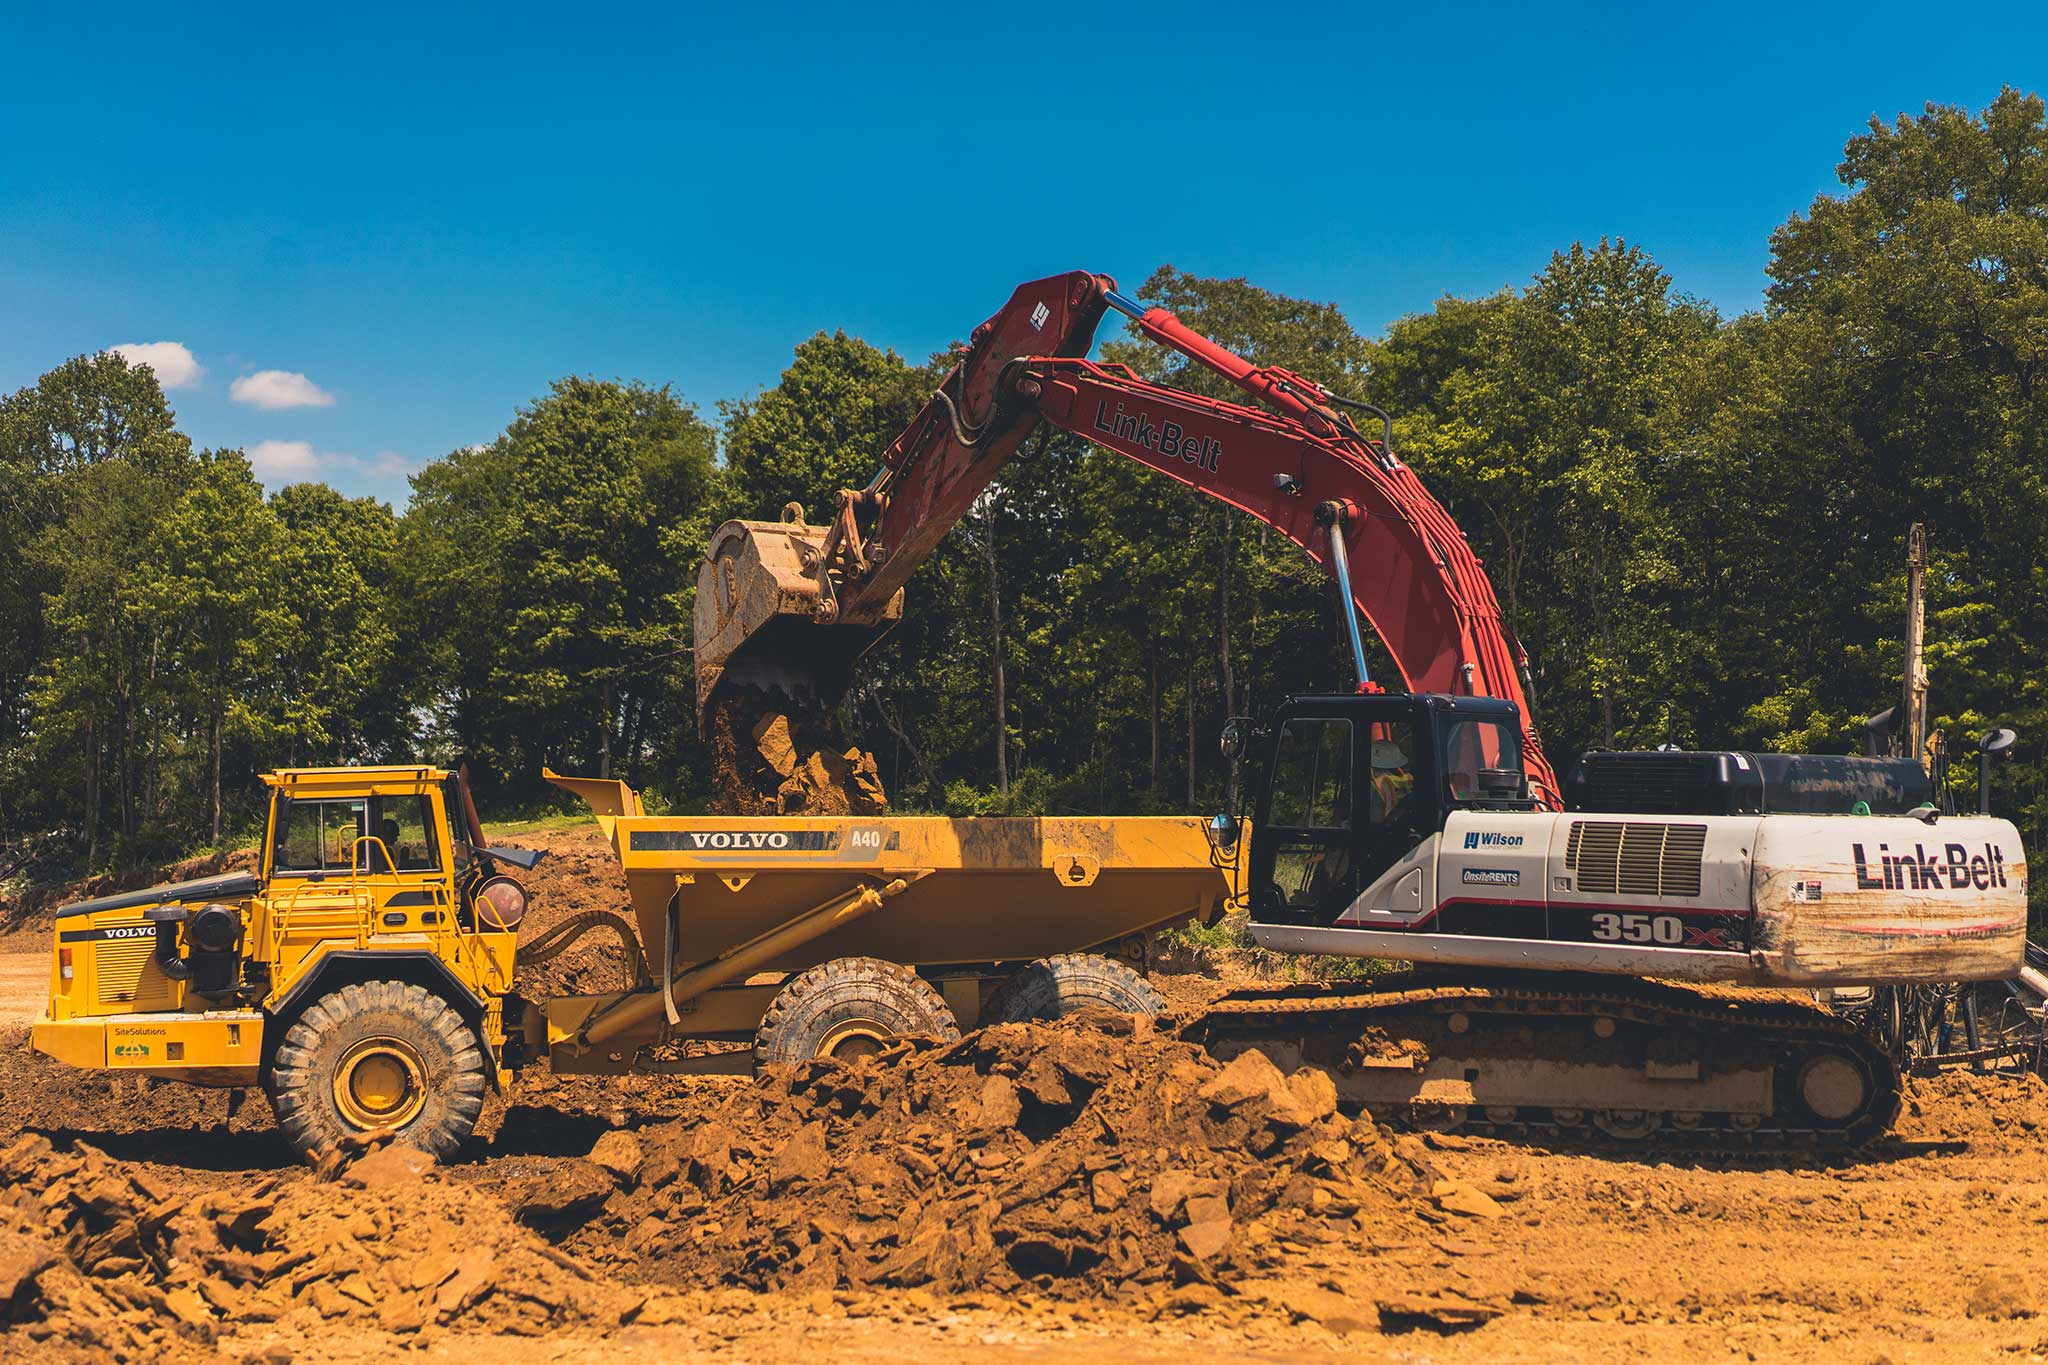 CDCI Excavator loading dirt into truck